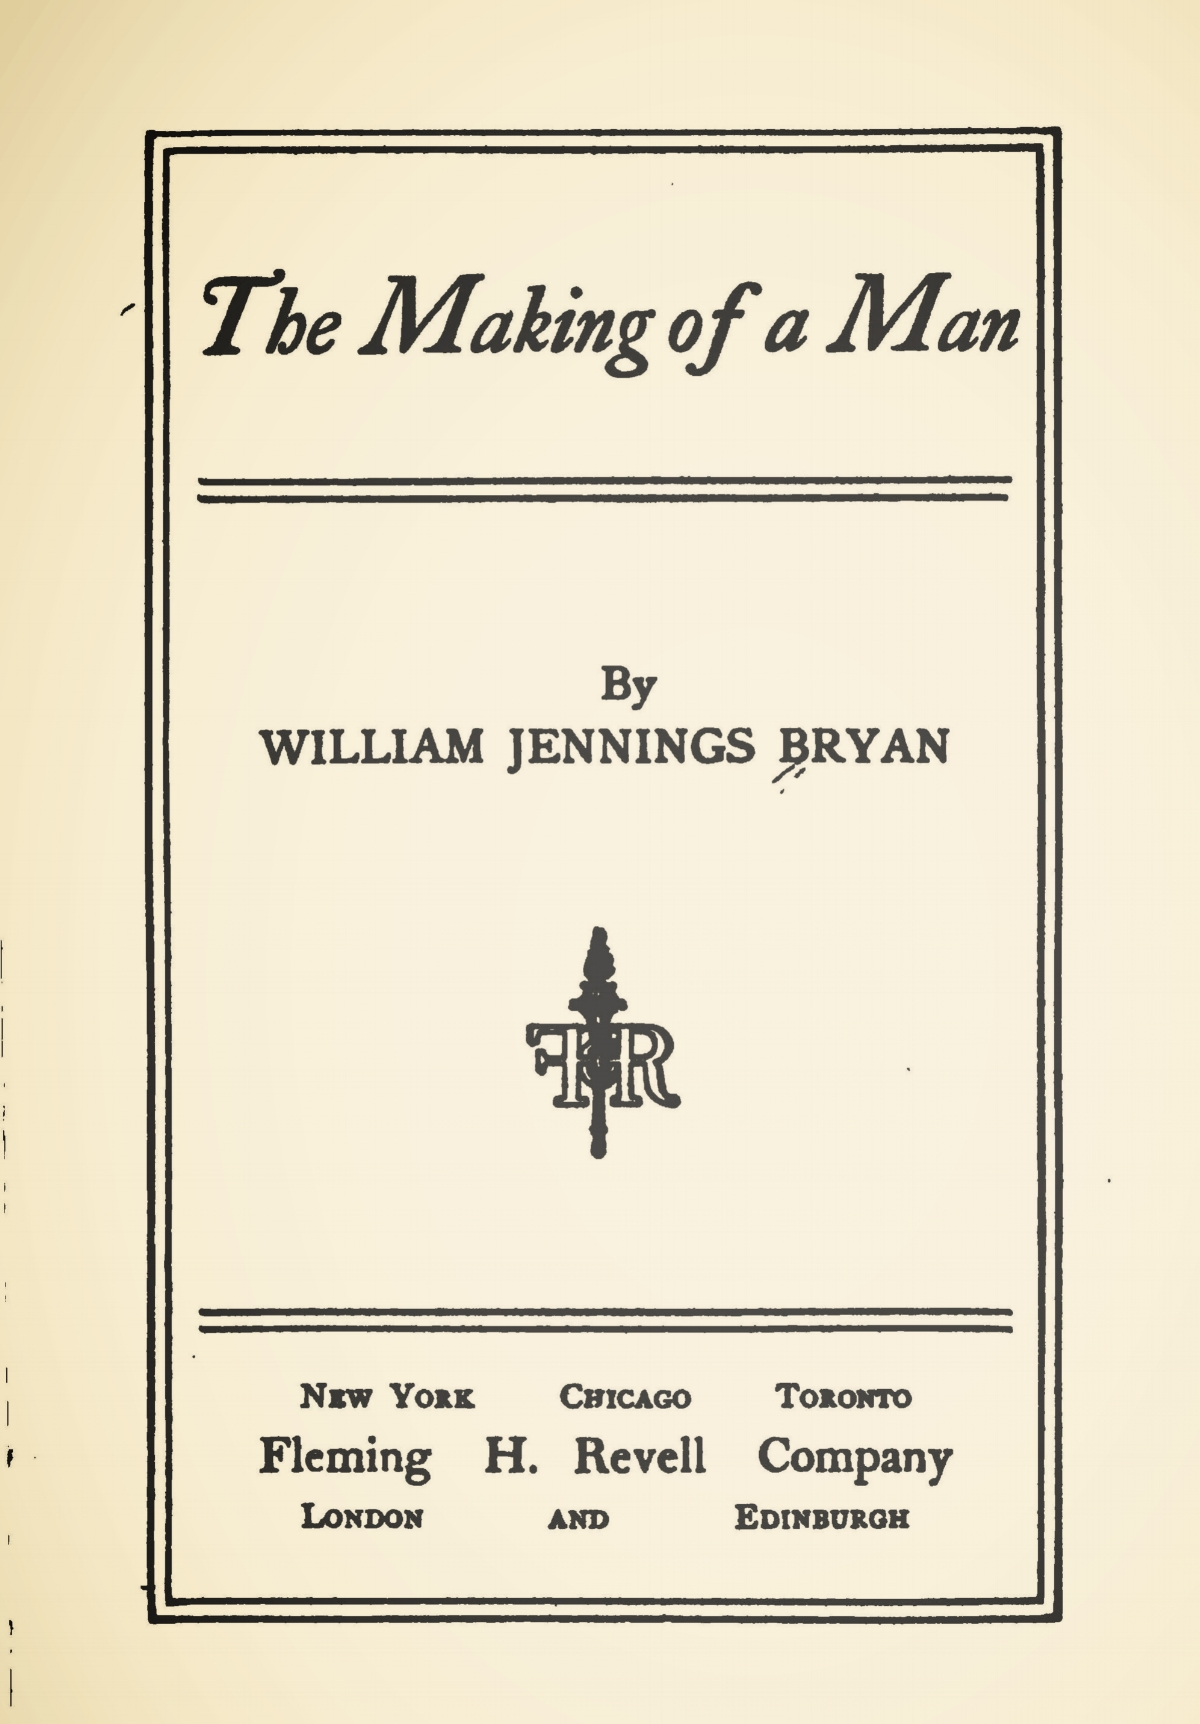 Bryan, Sr., William Jennings, The Making of a Man Title Page.jpg